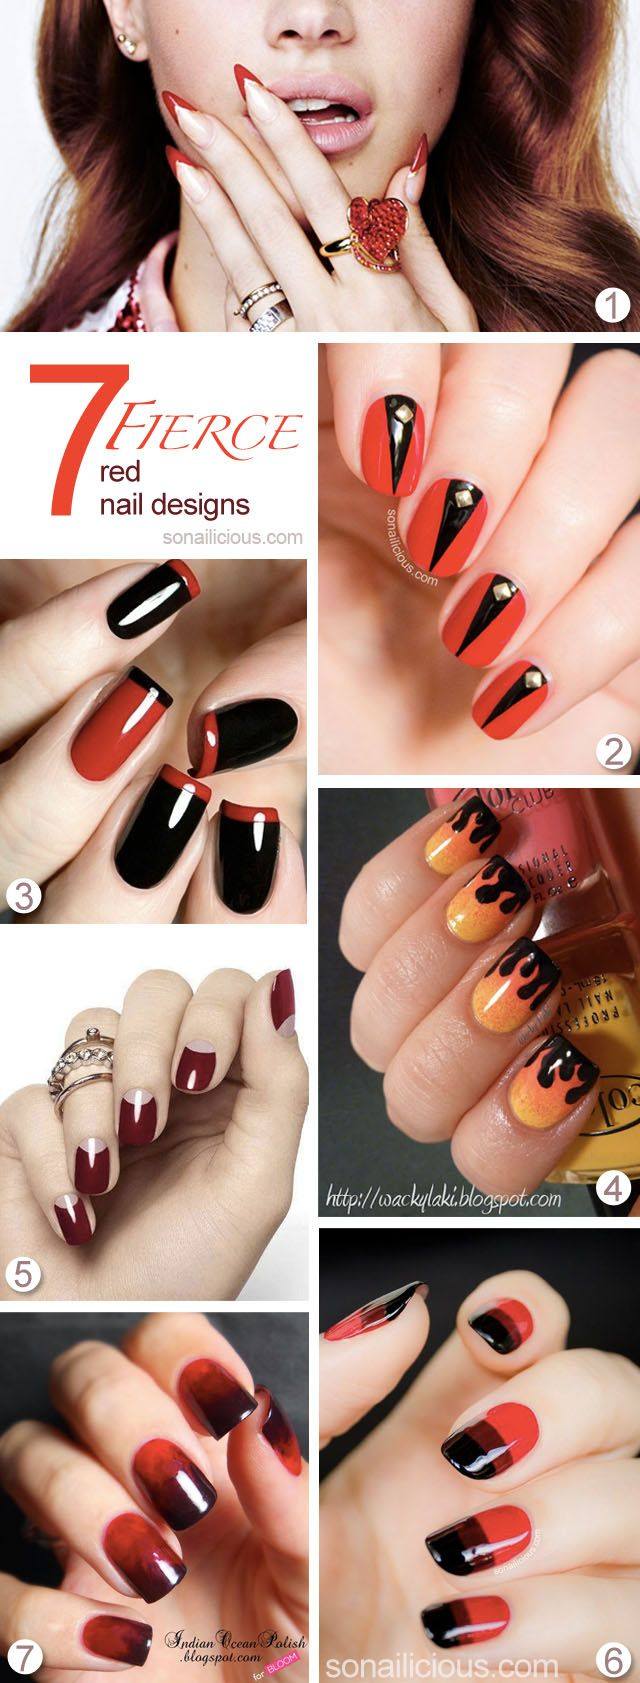 58 best Red Nails images on Pinterest   Nail polish, Red nail and ...